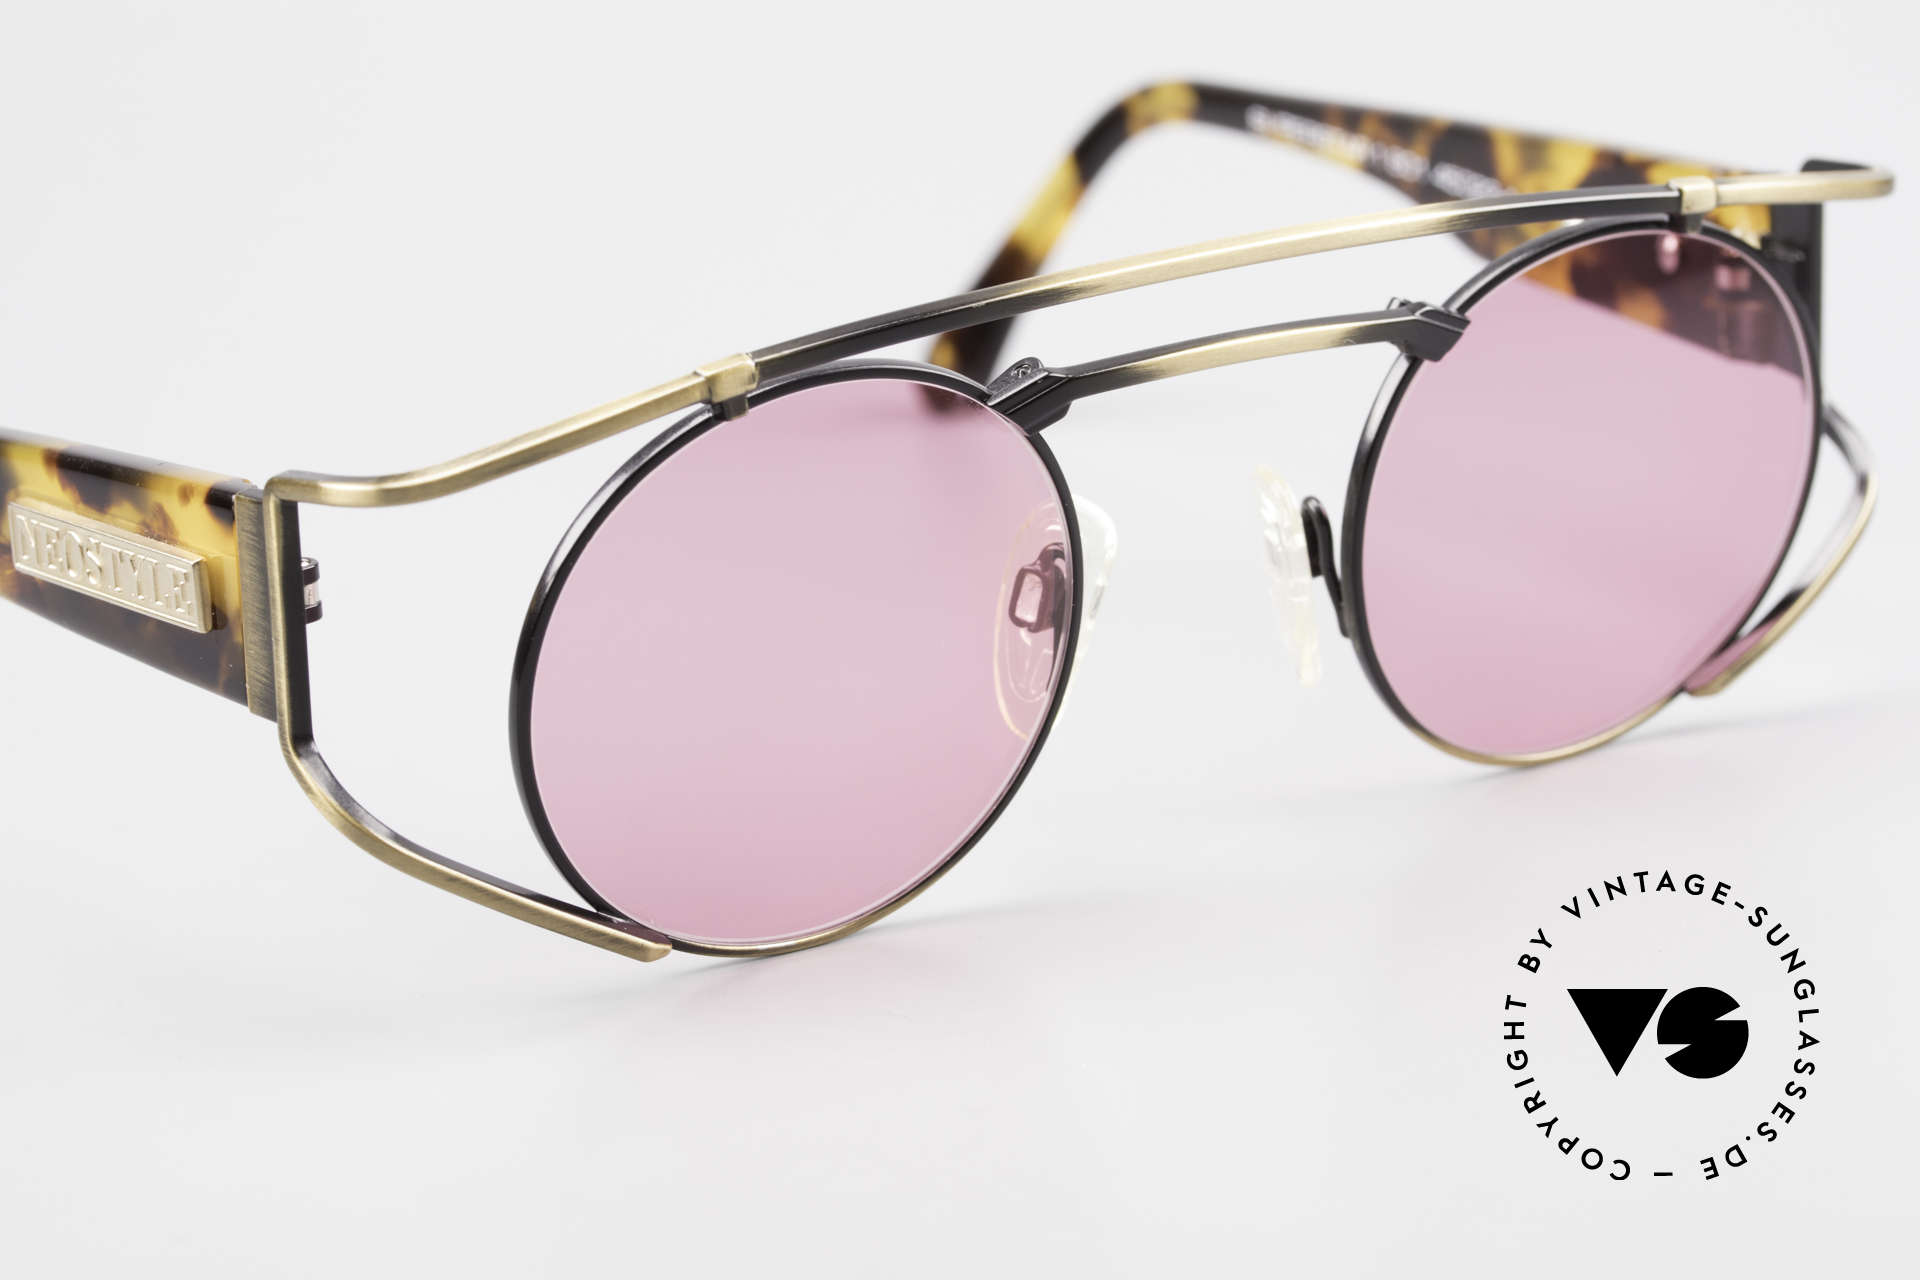 Neostyle Superstar 1 Steampunk Sunglasses Pink, unworn (like all our vintage STEAMPUNK glasses), Made for Men and Women